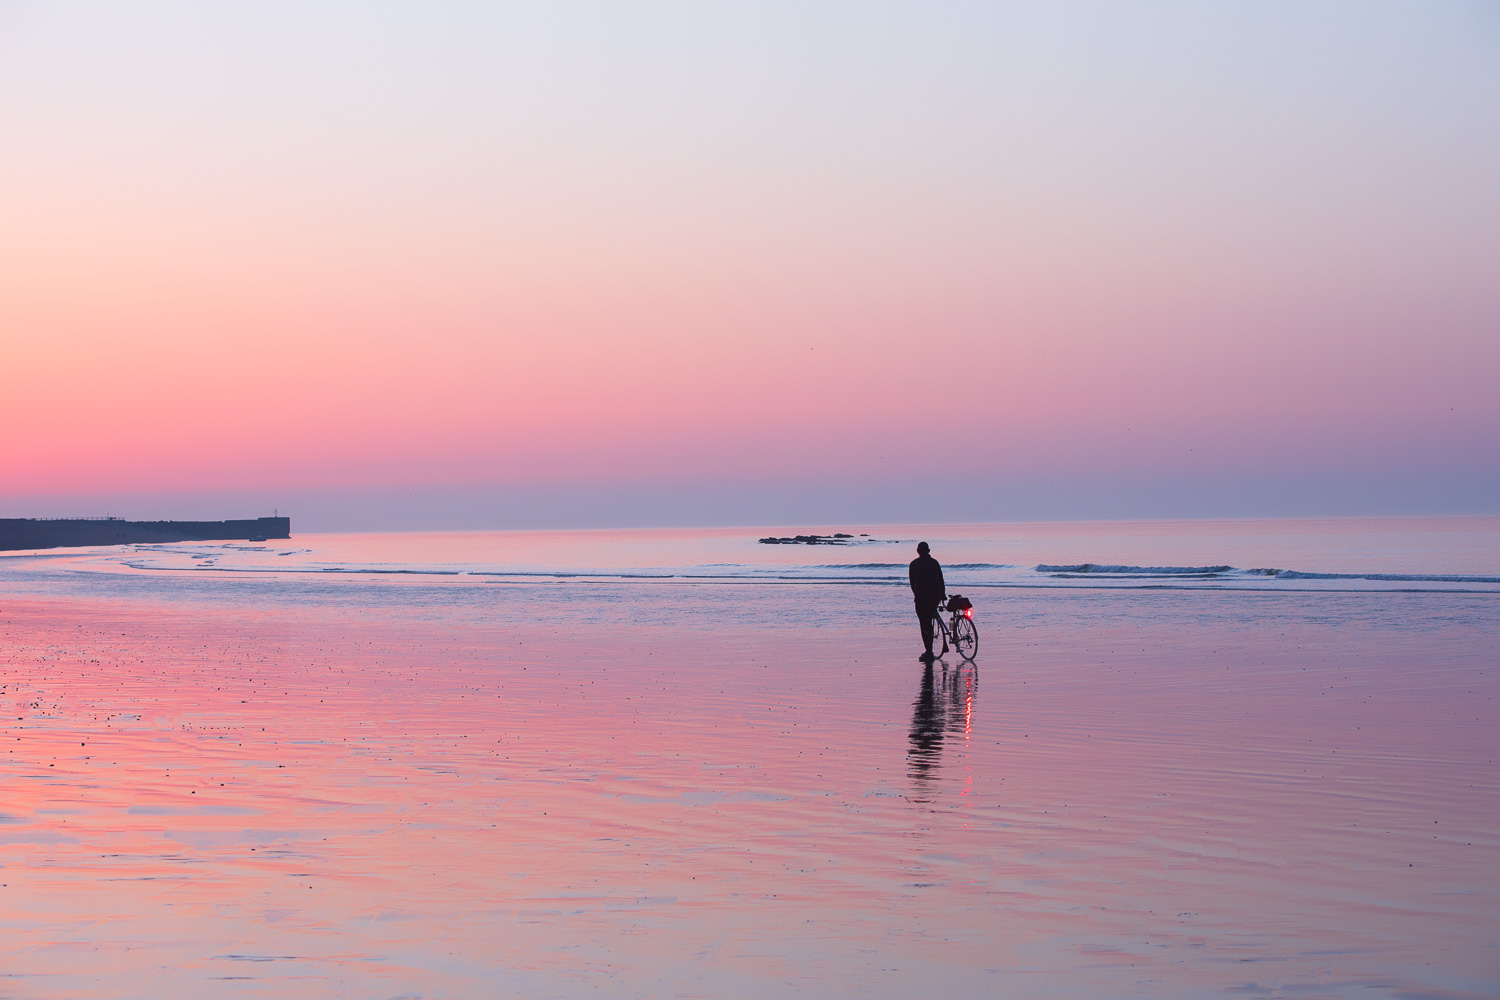 Man with bicycle standing on shimmering pink low tide sand at sunrise